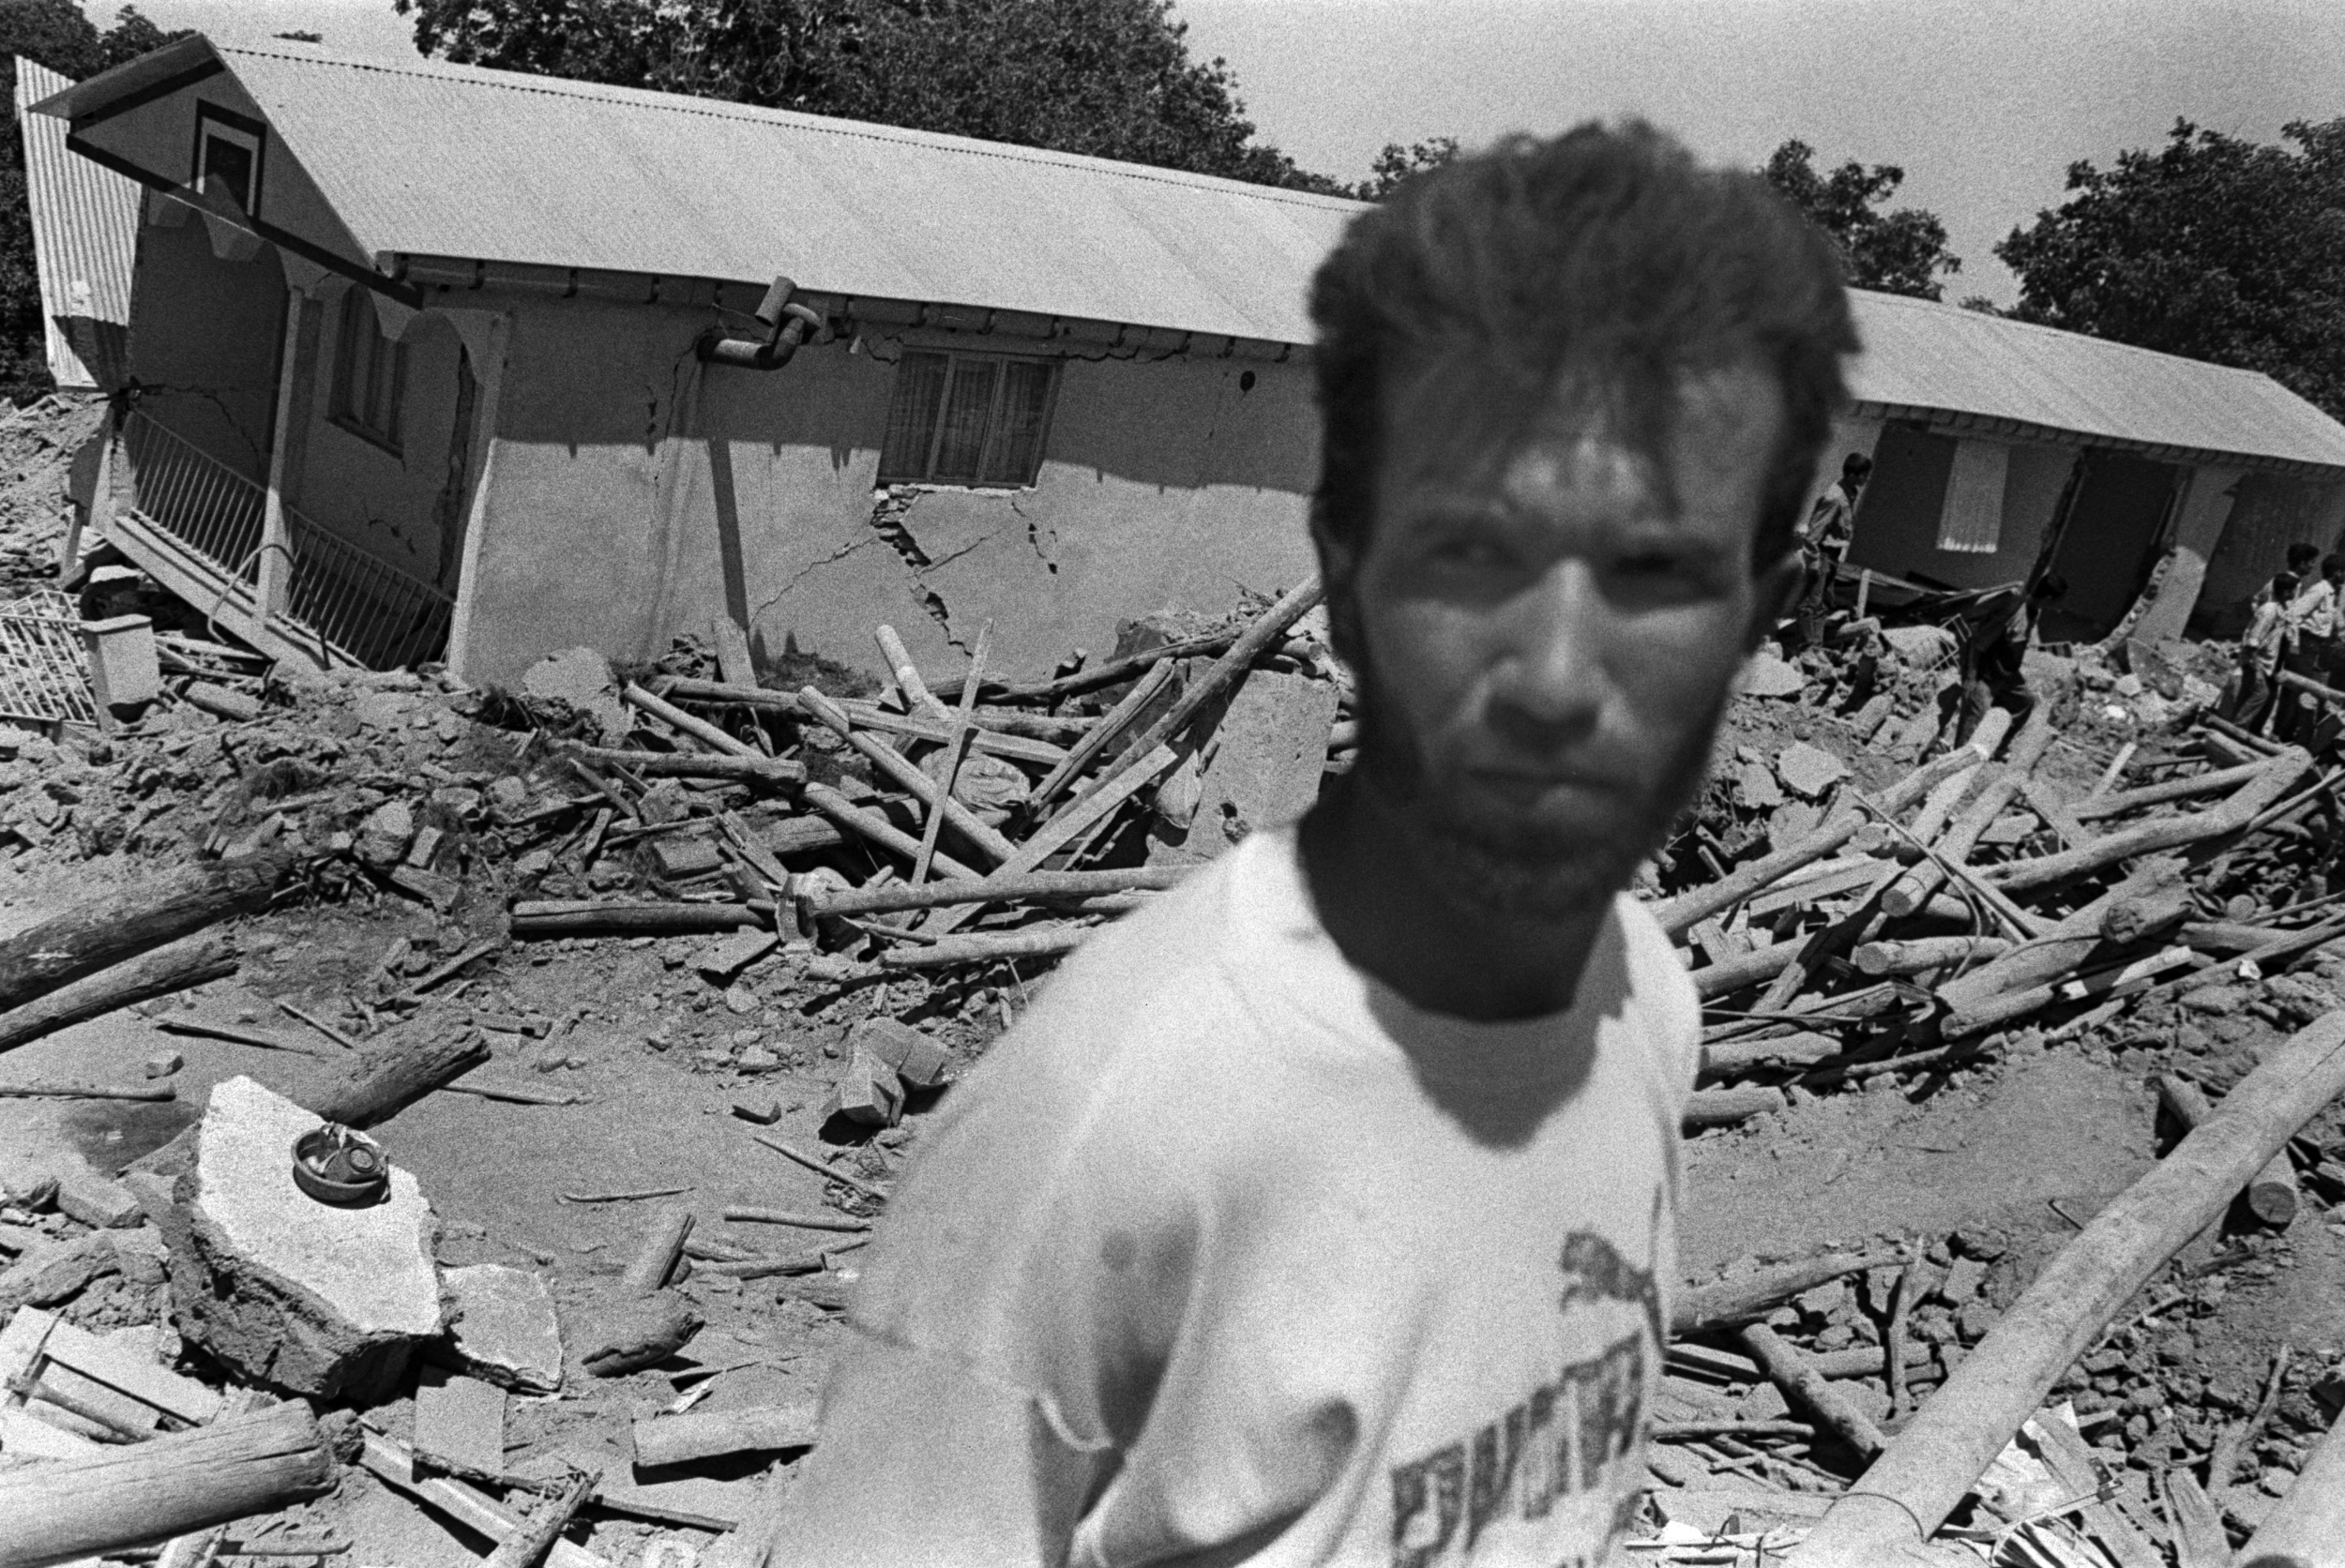 Ghazvin, Iran  -OnJune 23, 2002 a 6.0 magnitude earthquake struck the Qazvin Province of Iran 300 miles from the capital Tehran.